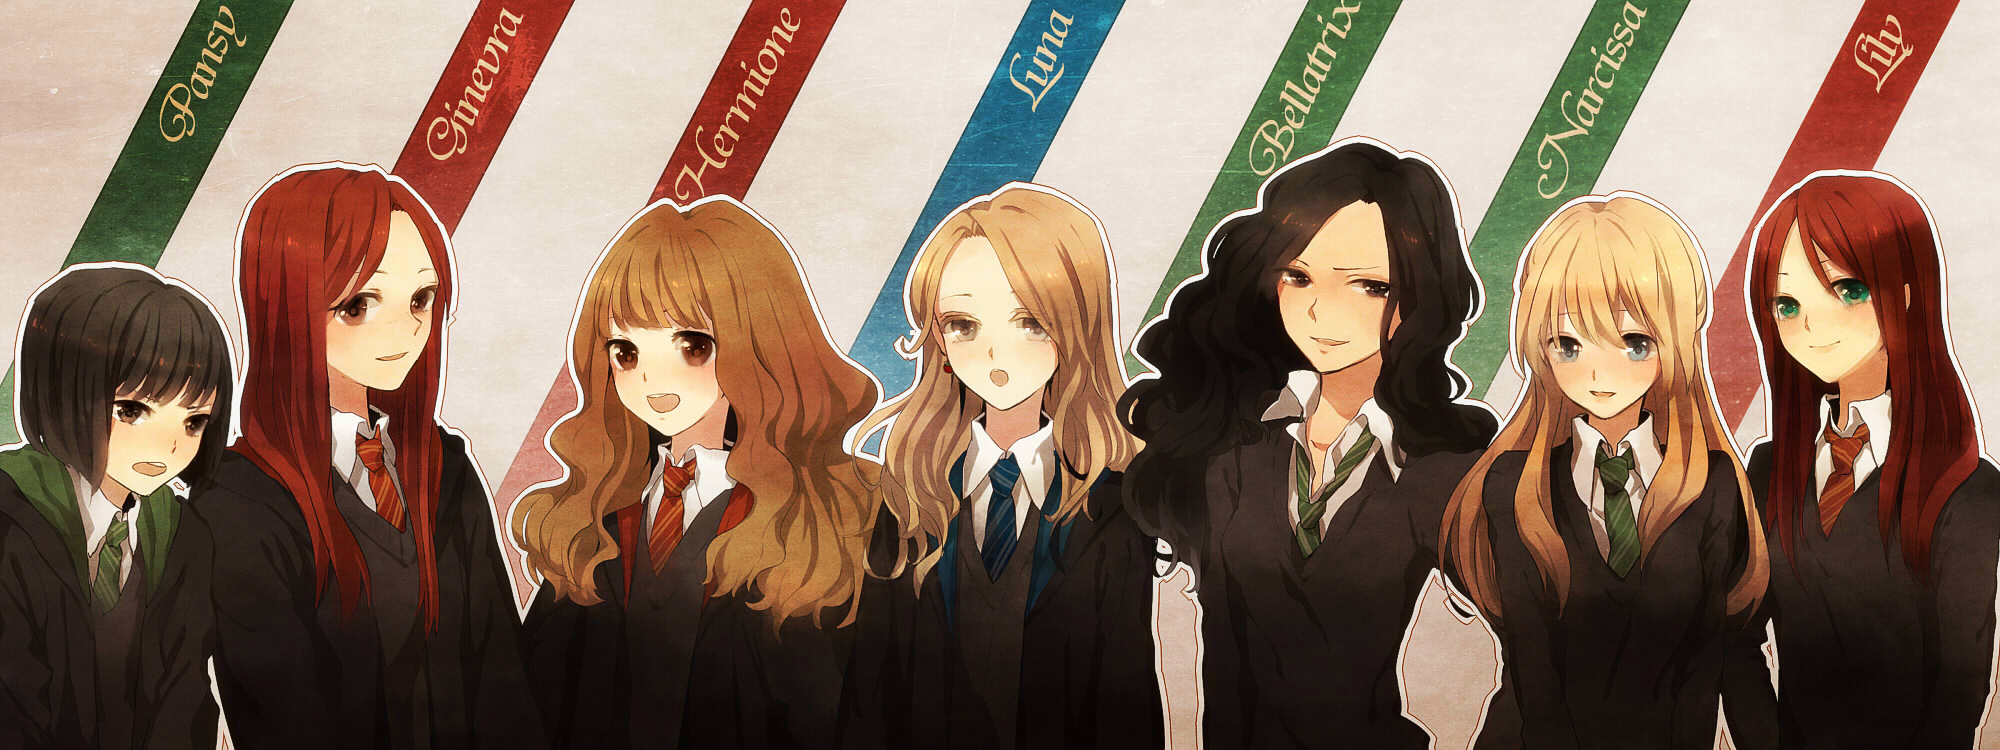 Harry Potter Anime image Potter Anime HD wallpapers and backgrounds